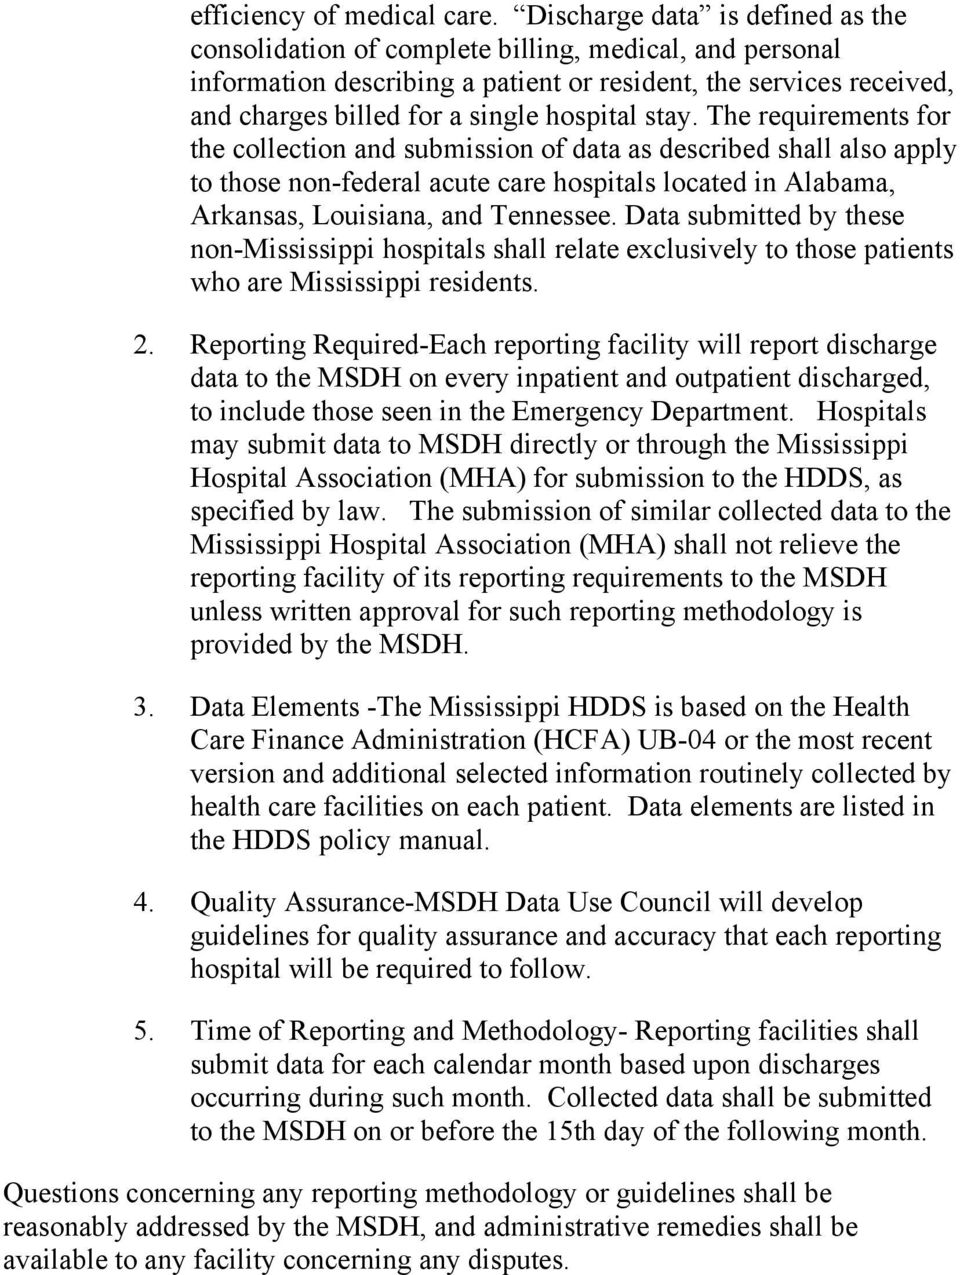 stay. The requirements for the collection and submission of data as described shall also apply to those non-federal acute care hospitals located in Alabama, Arkansas, Louisiana, and Tennessee.